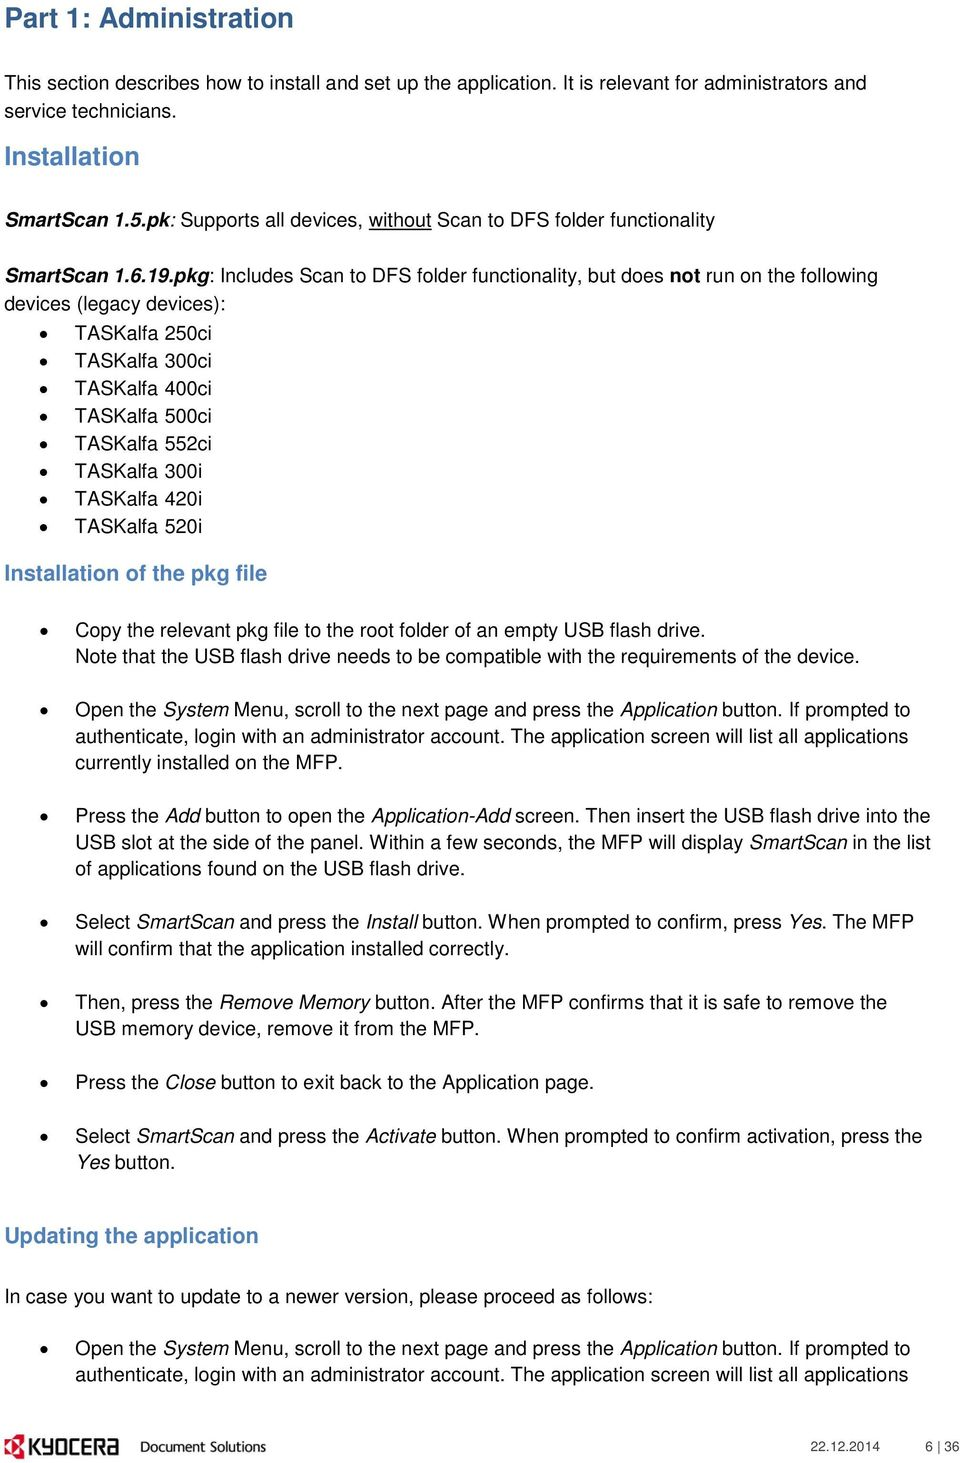 SET UP AND OPERATION GUIDE - PDF